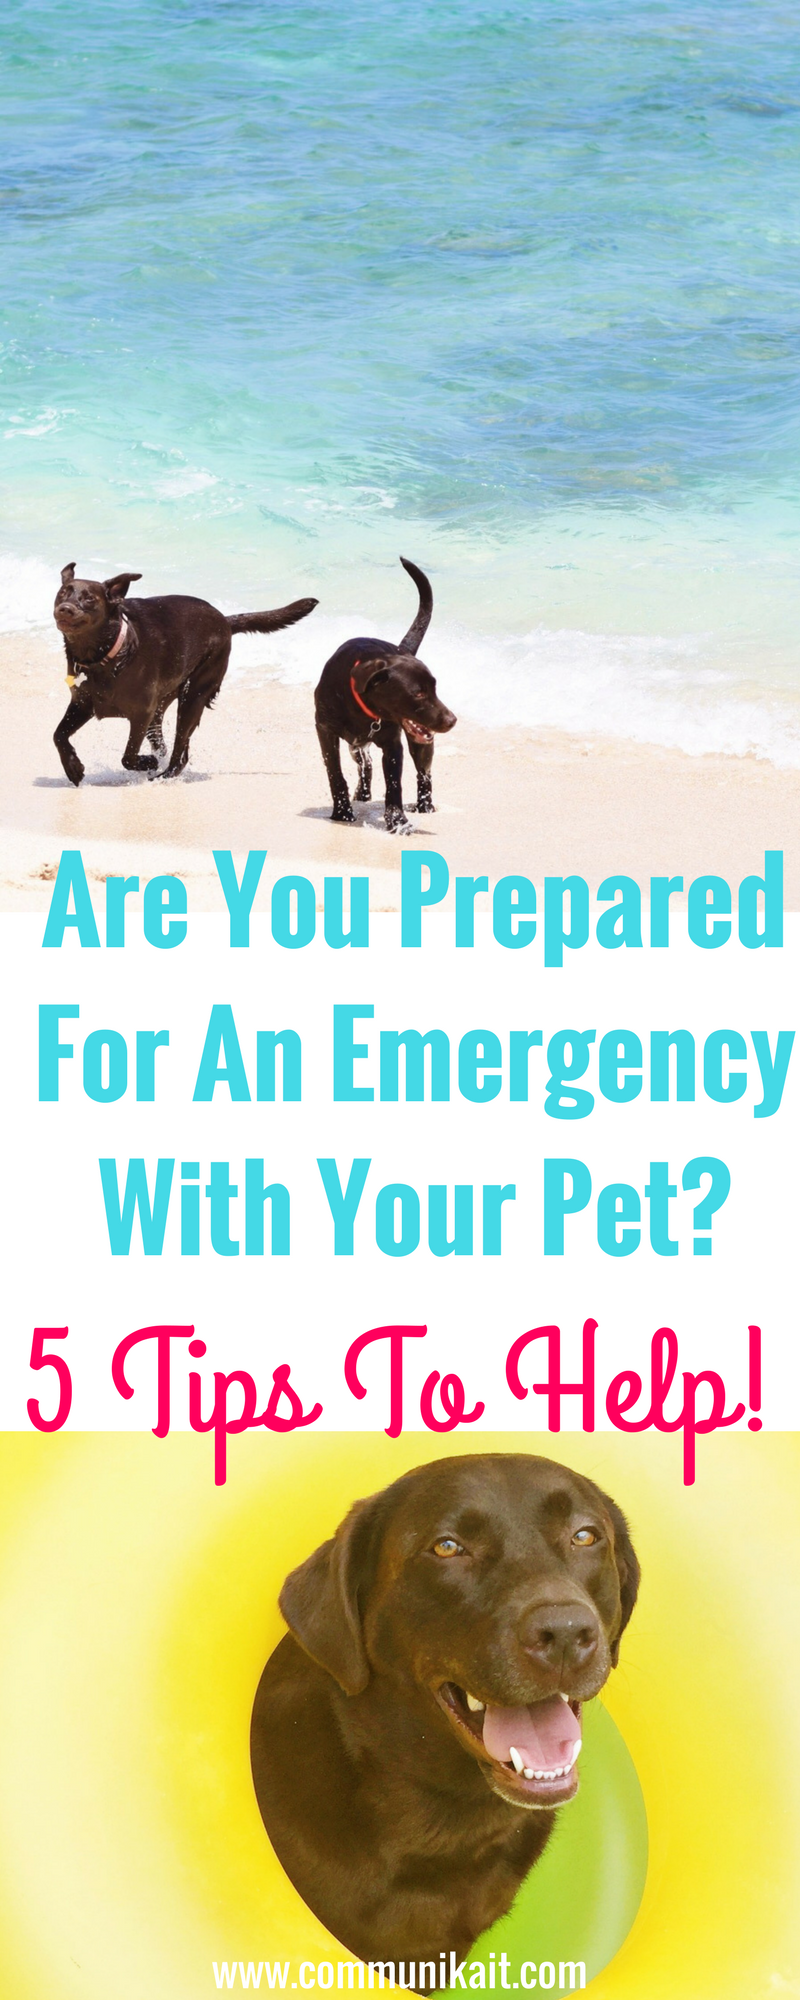 Are You Prepared For An Emergency With Your Pet? - Tips For Pets - Puppy Tips - Life Hacks For Dogs - Puppy Tips - Dog Care - Communikait by Kait Hanson - Chocolate Labrador